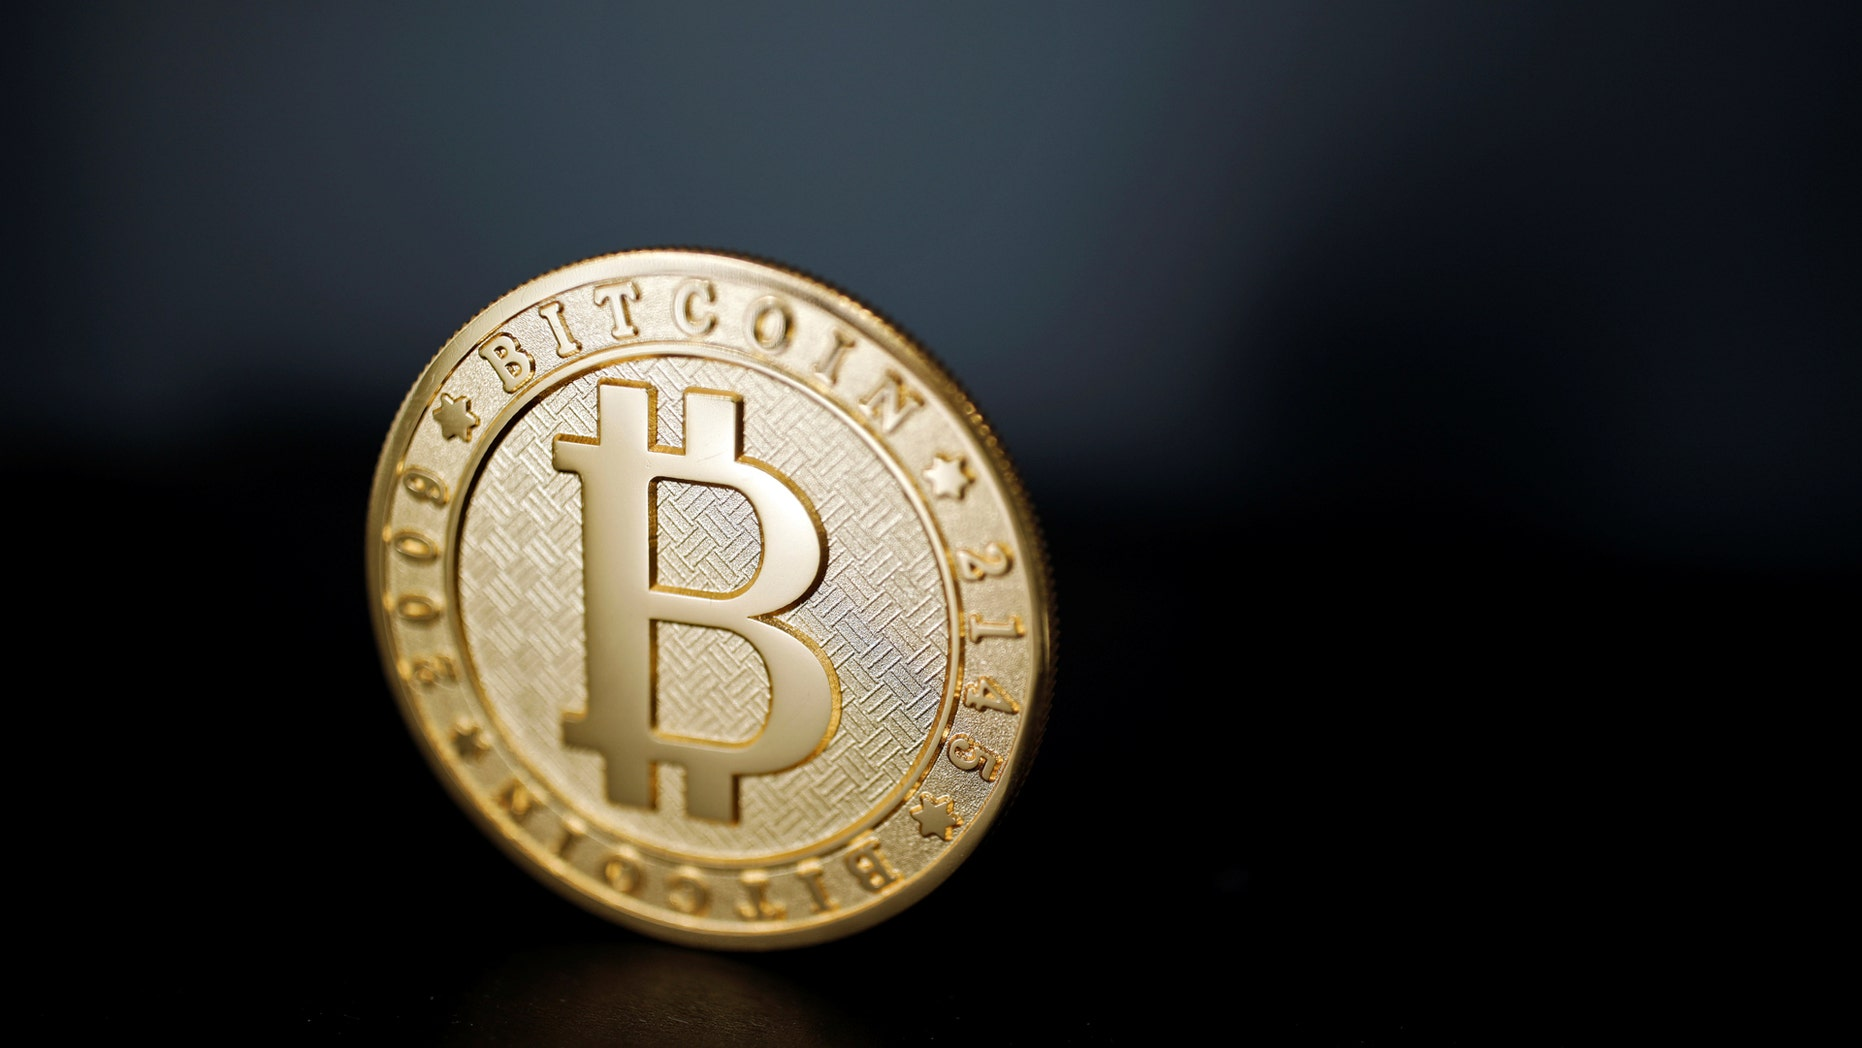 A Bitcoin is seen in a picture taken at La Maison du Bitcoin in Paris.